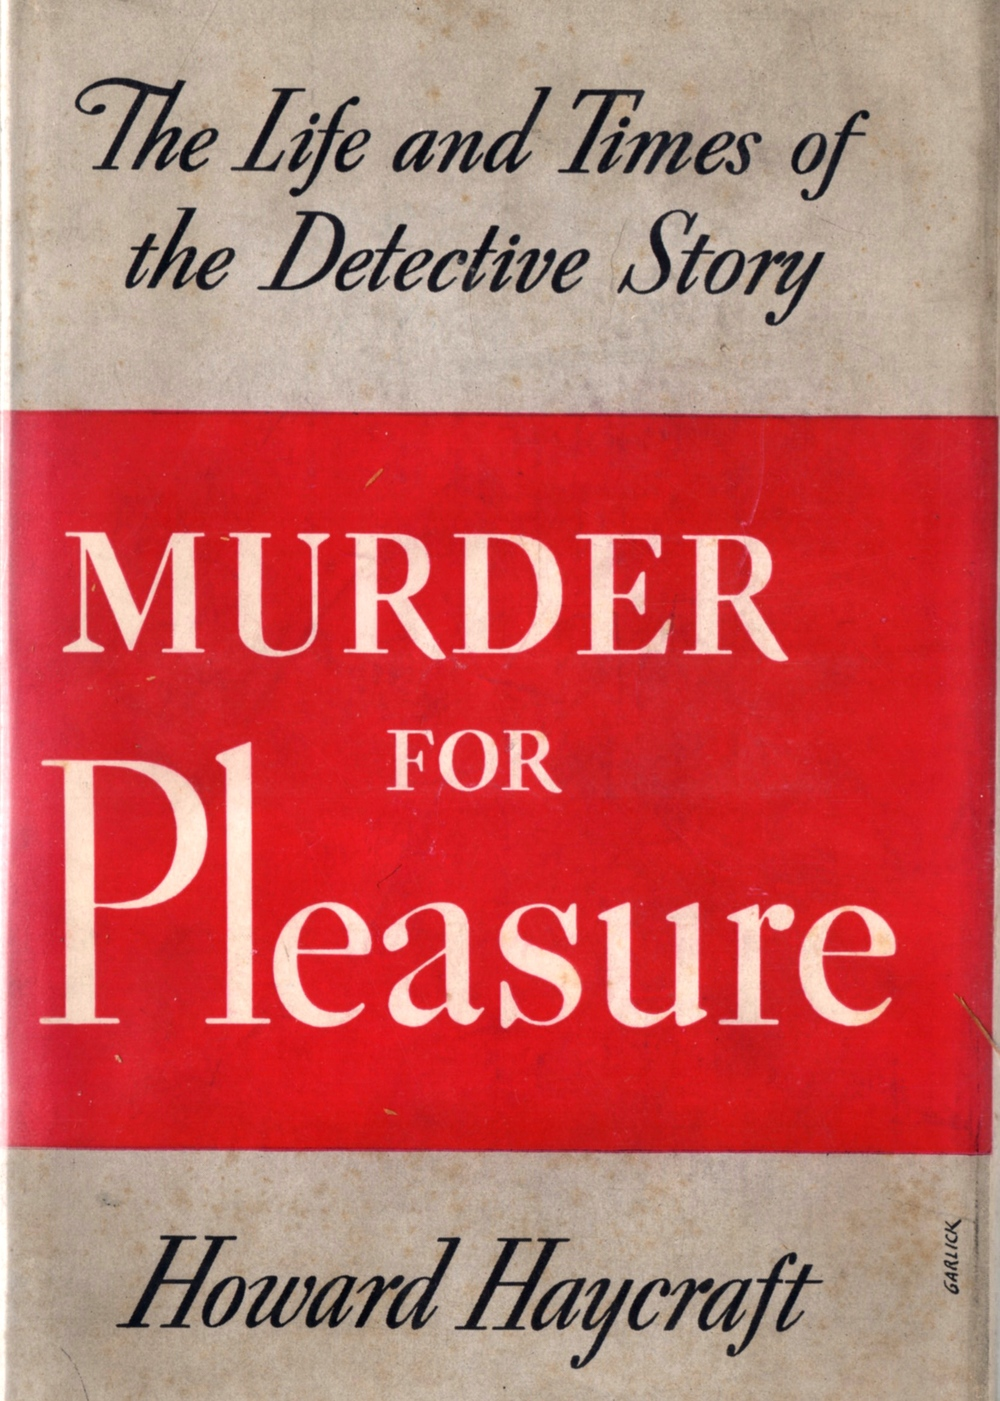 The dust jacket to the 1941 edition of  Murder for Pleasure .